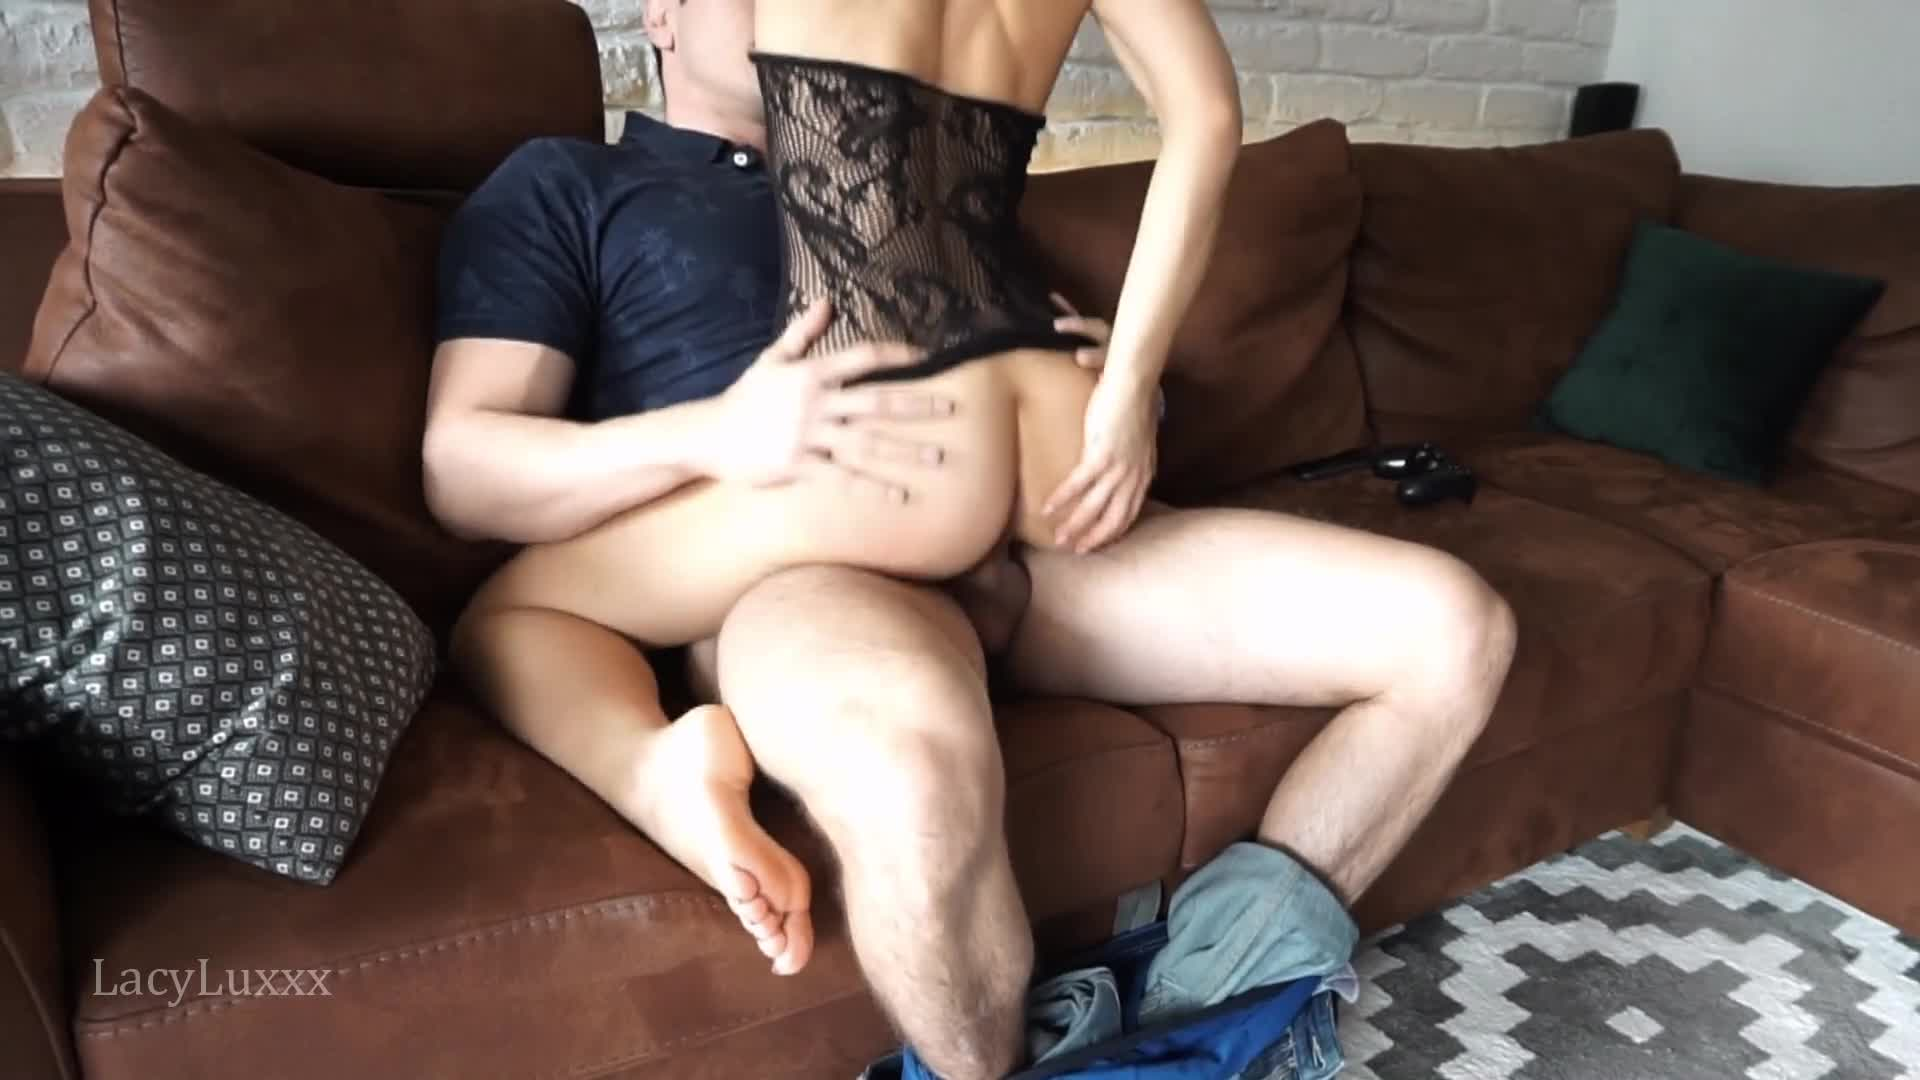 Watch Me Fuck My Fat Pussy